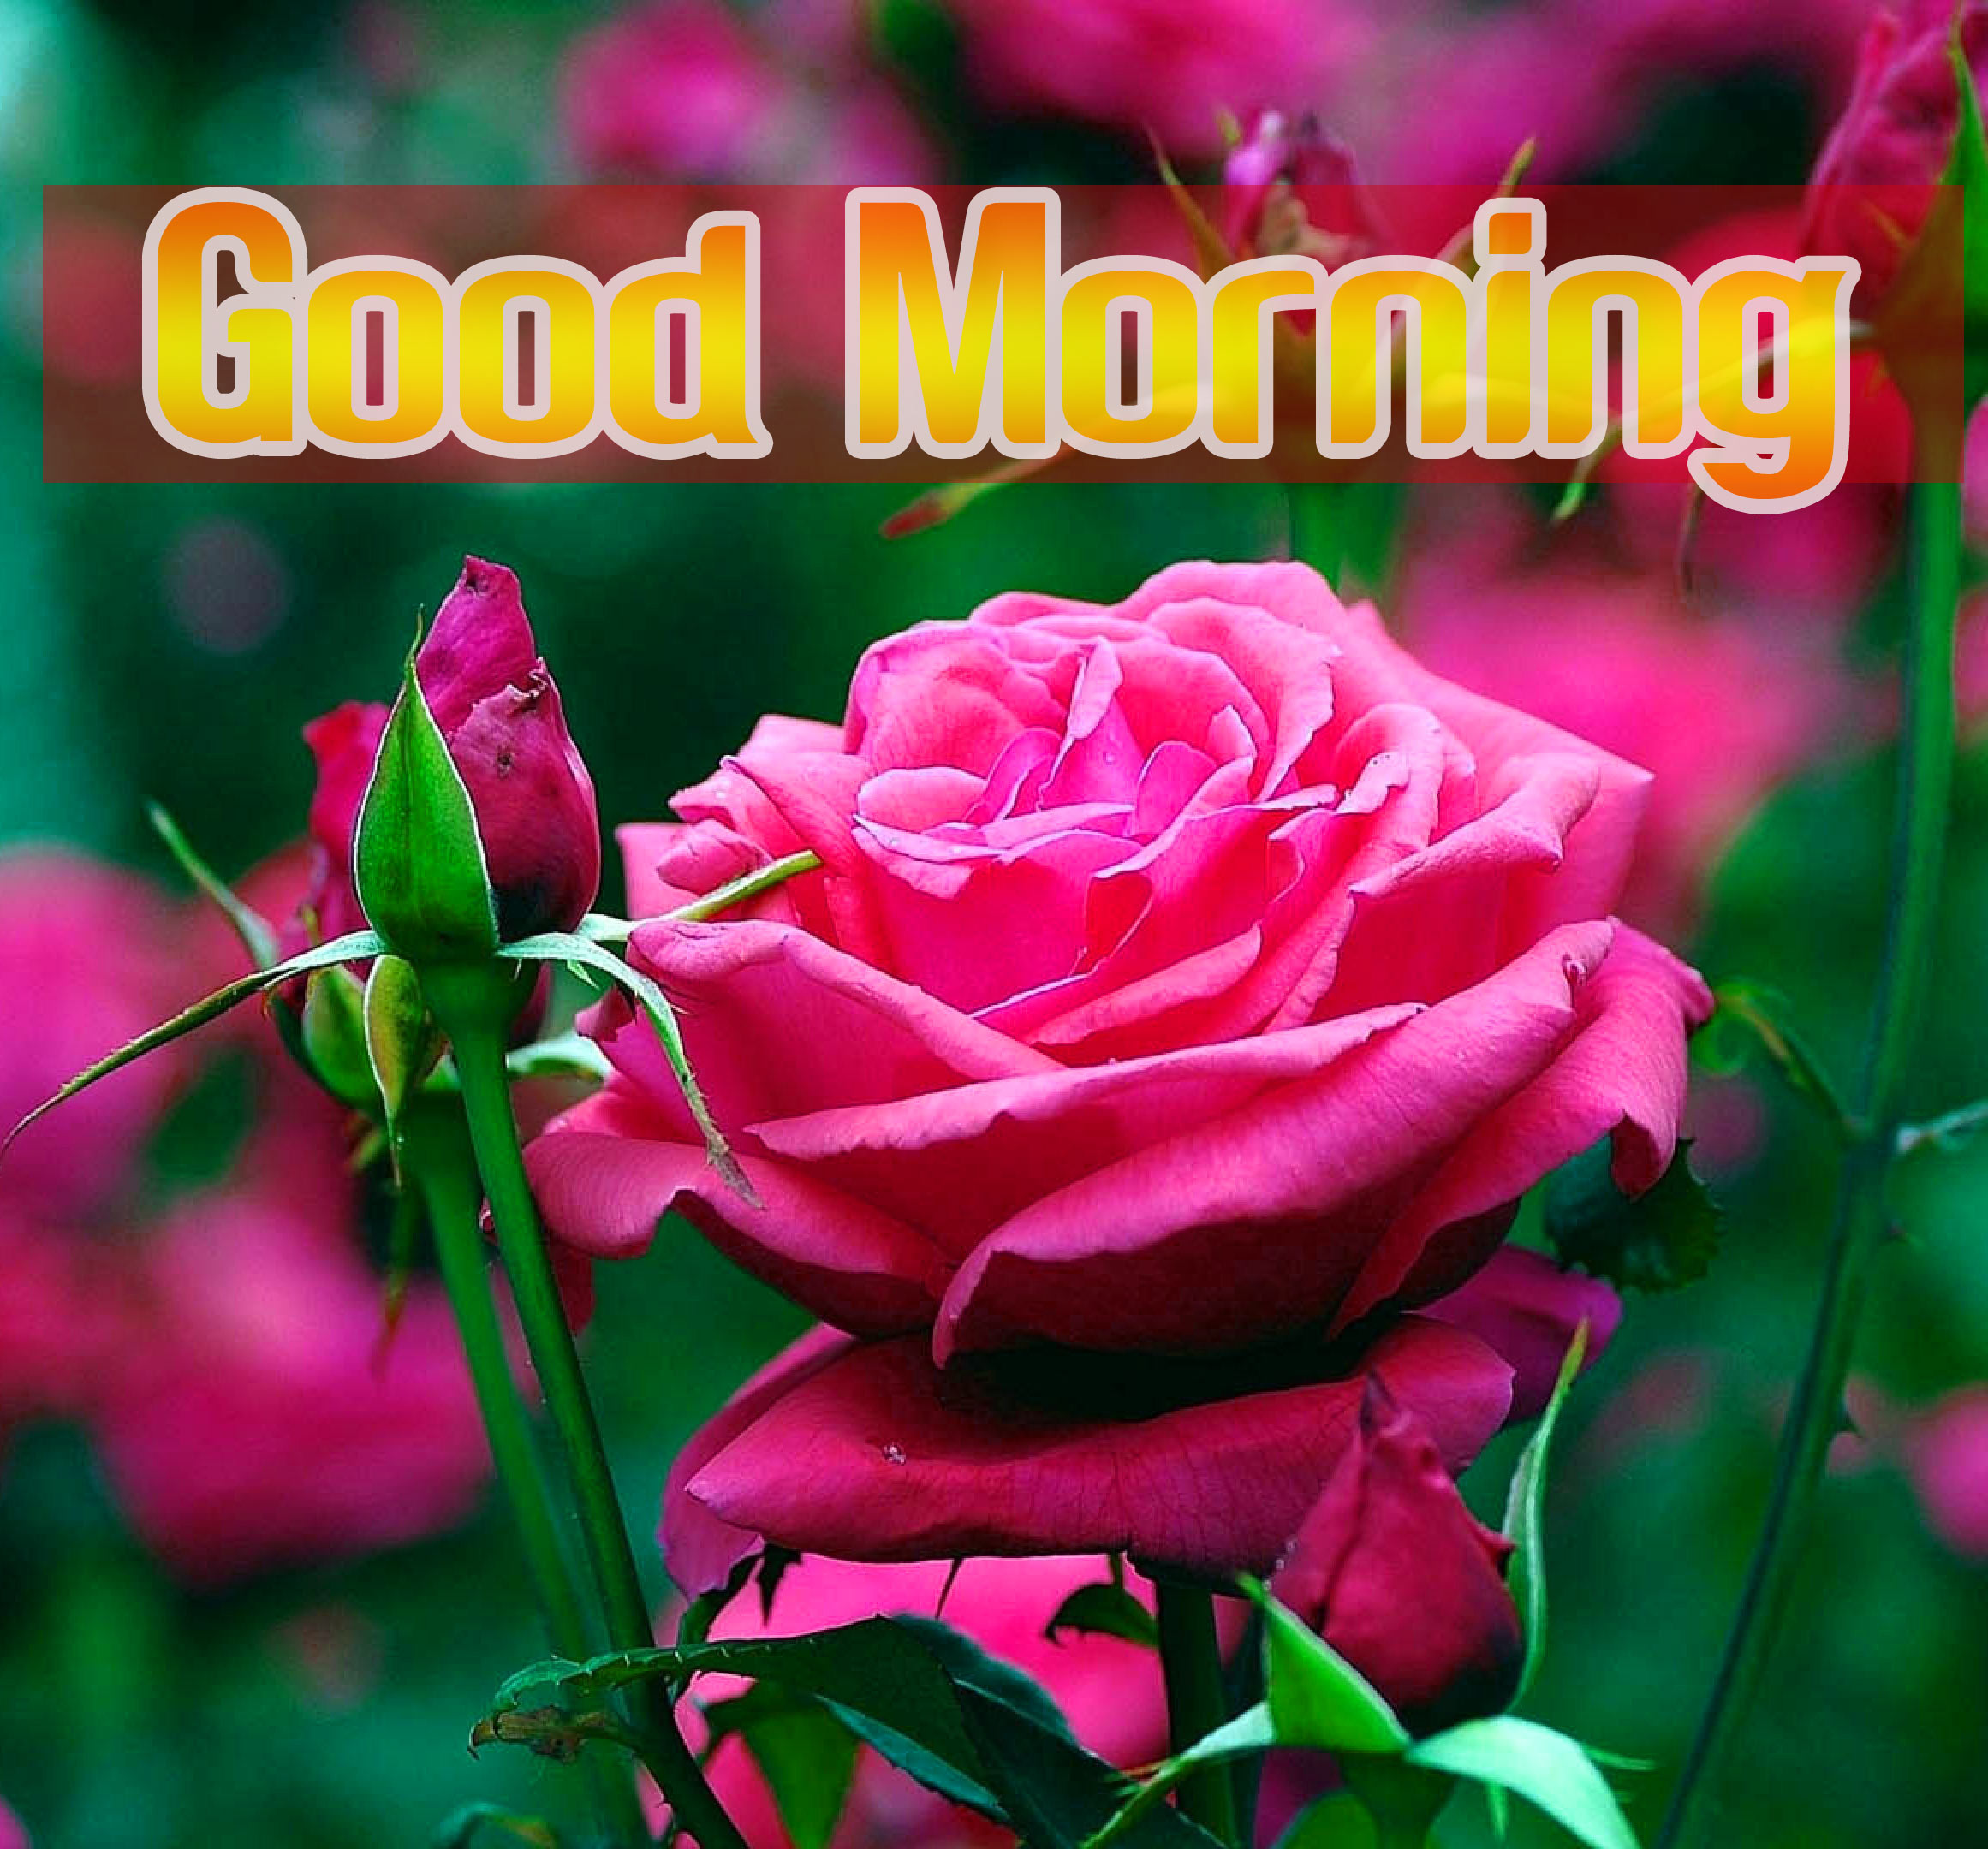 Flower Good morning Images Pics Free For Facebook